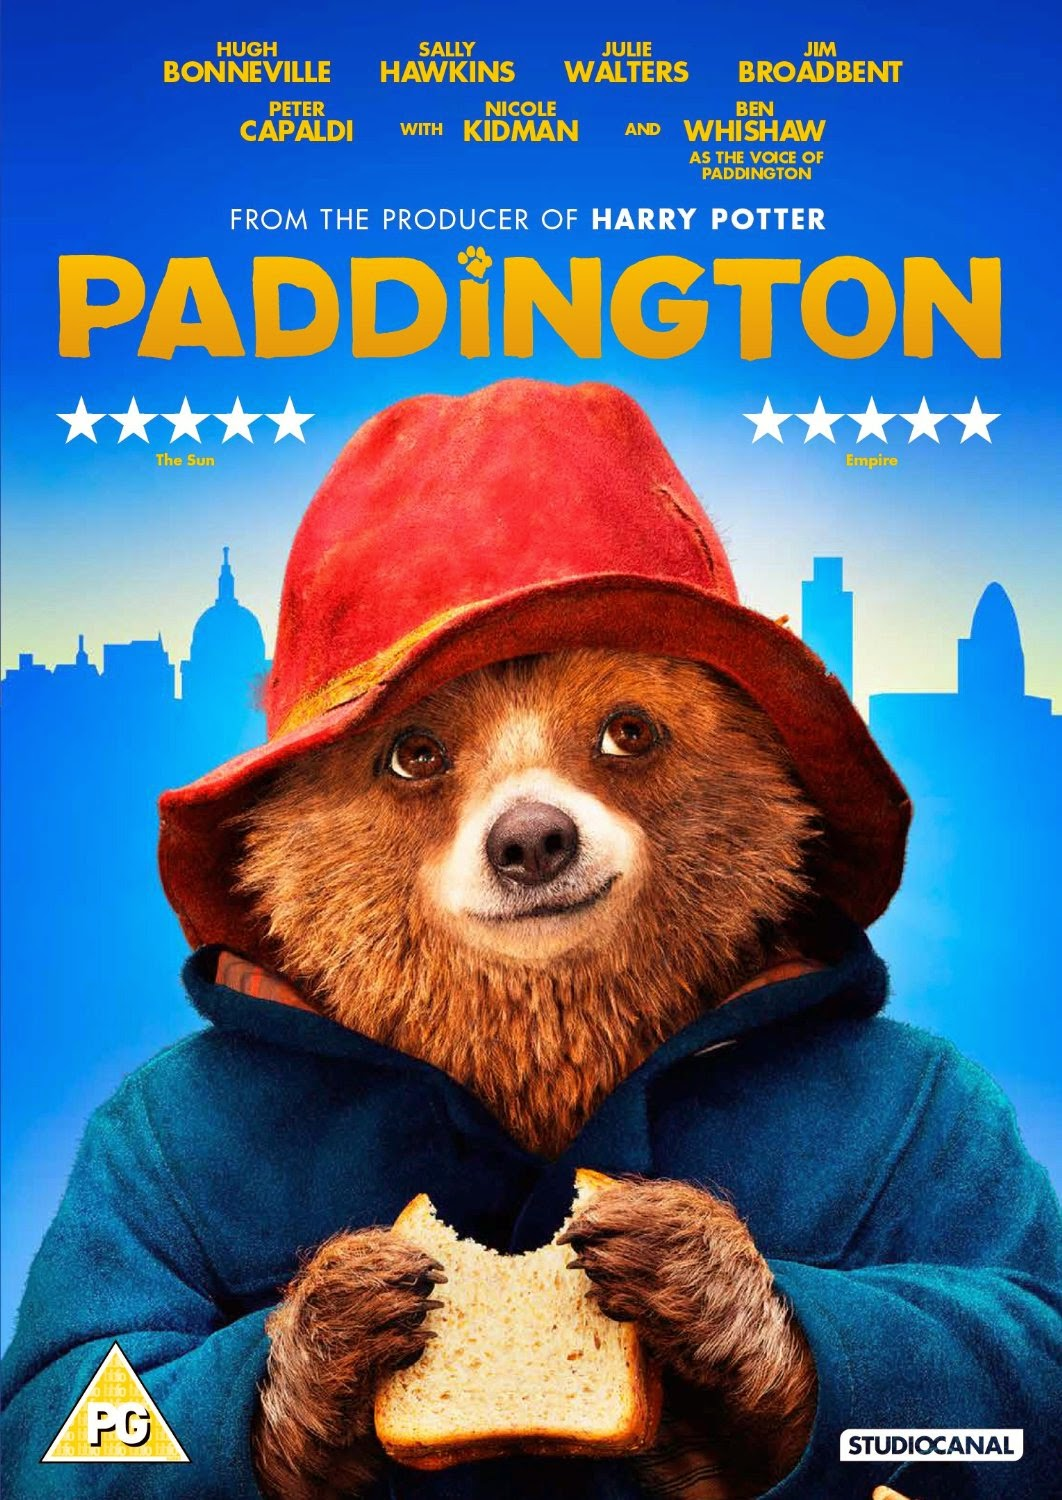 Paddington (2015) Movie Watch Online And Download [HD]